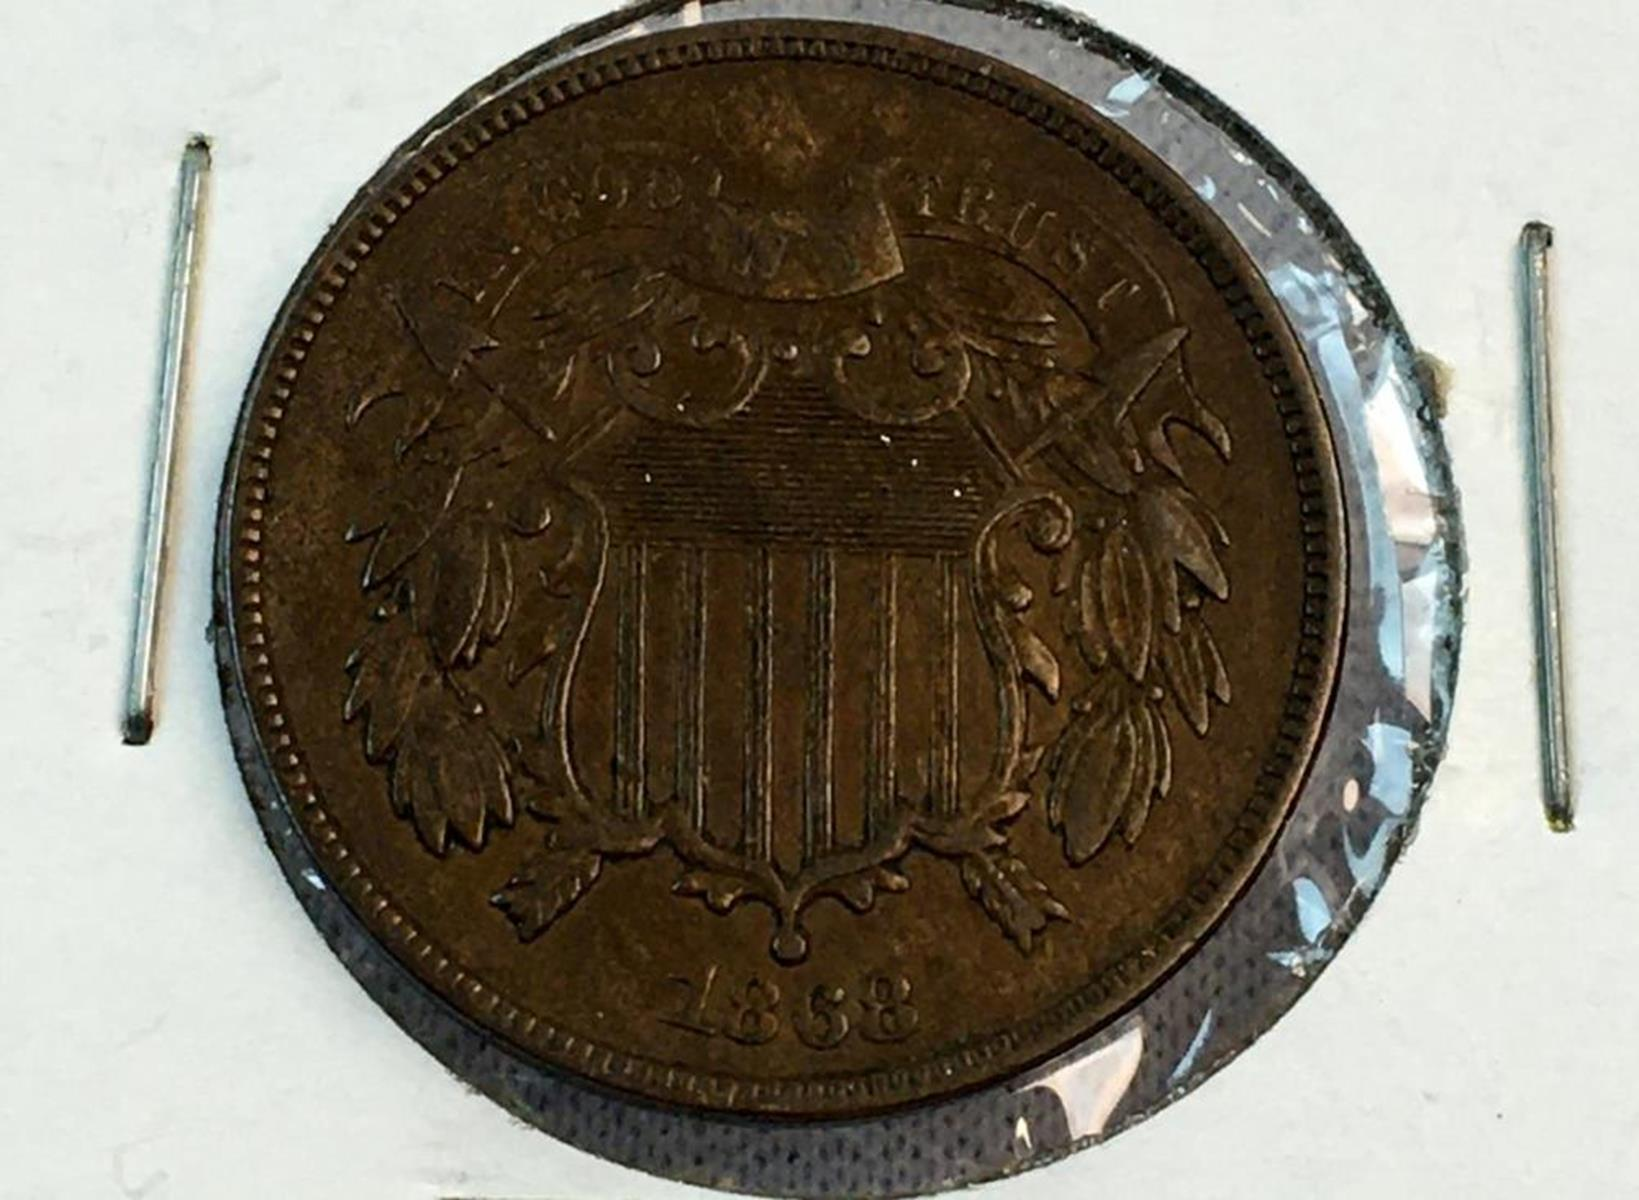 1868 US 2-Cent Piece